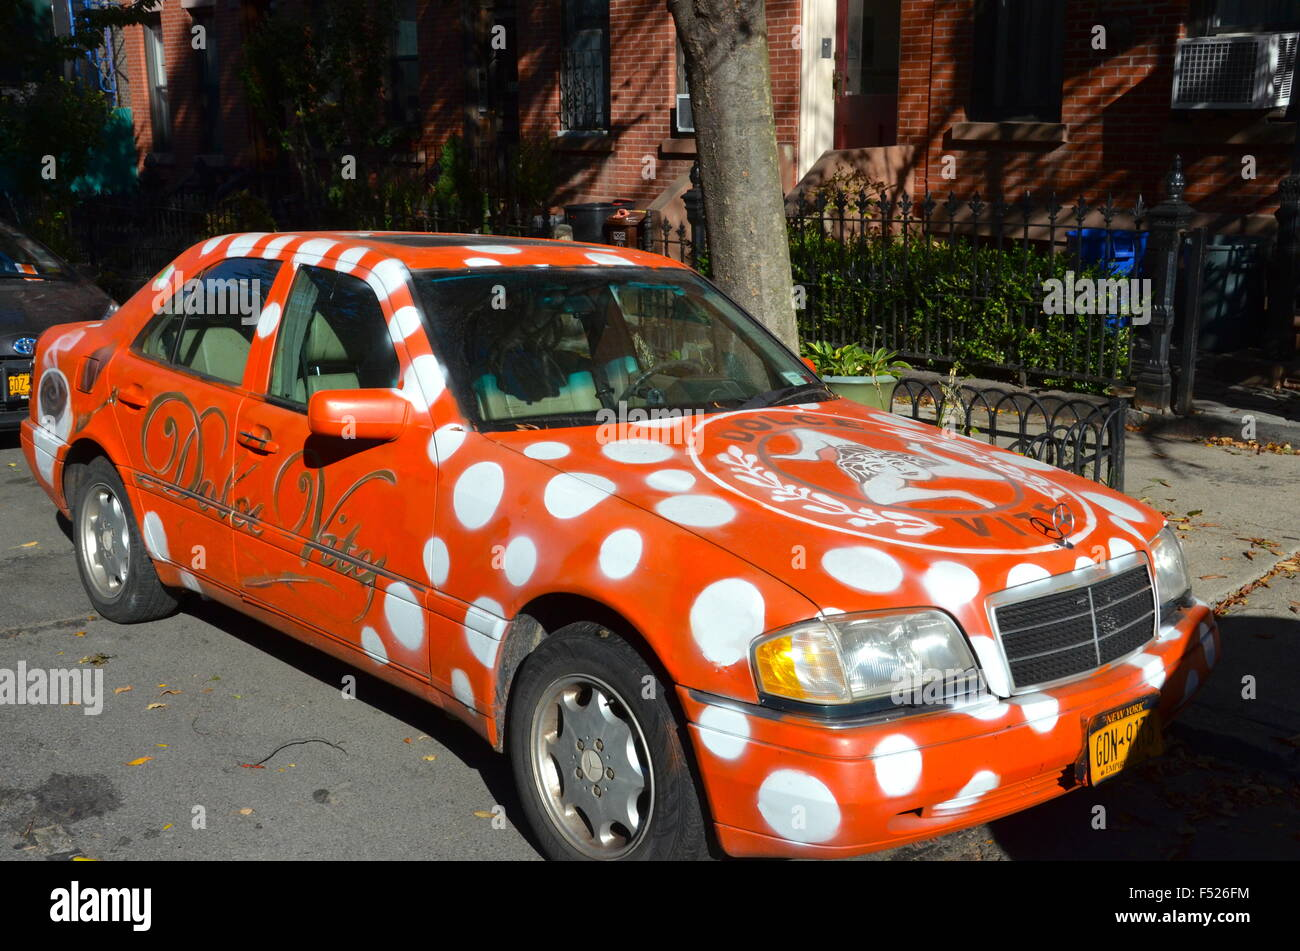 hand painted car advertising restaurant brooklyn dolce vita - Stock Image